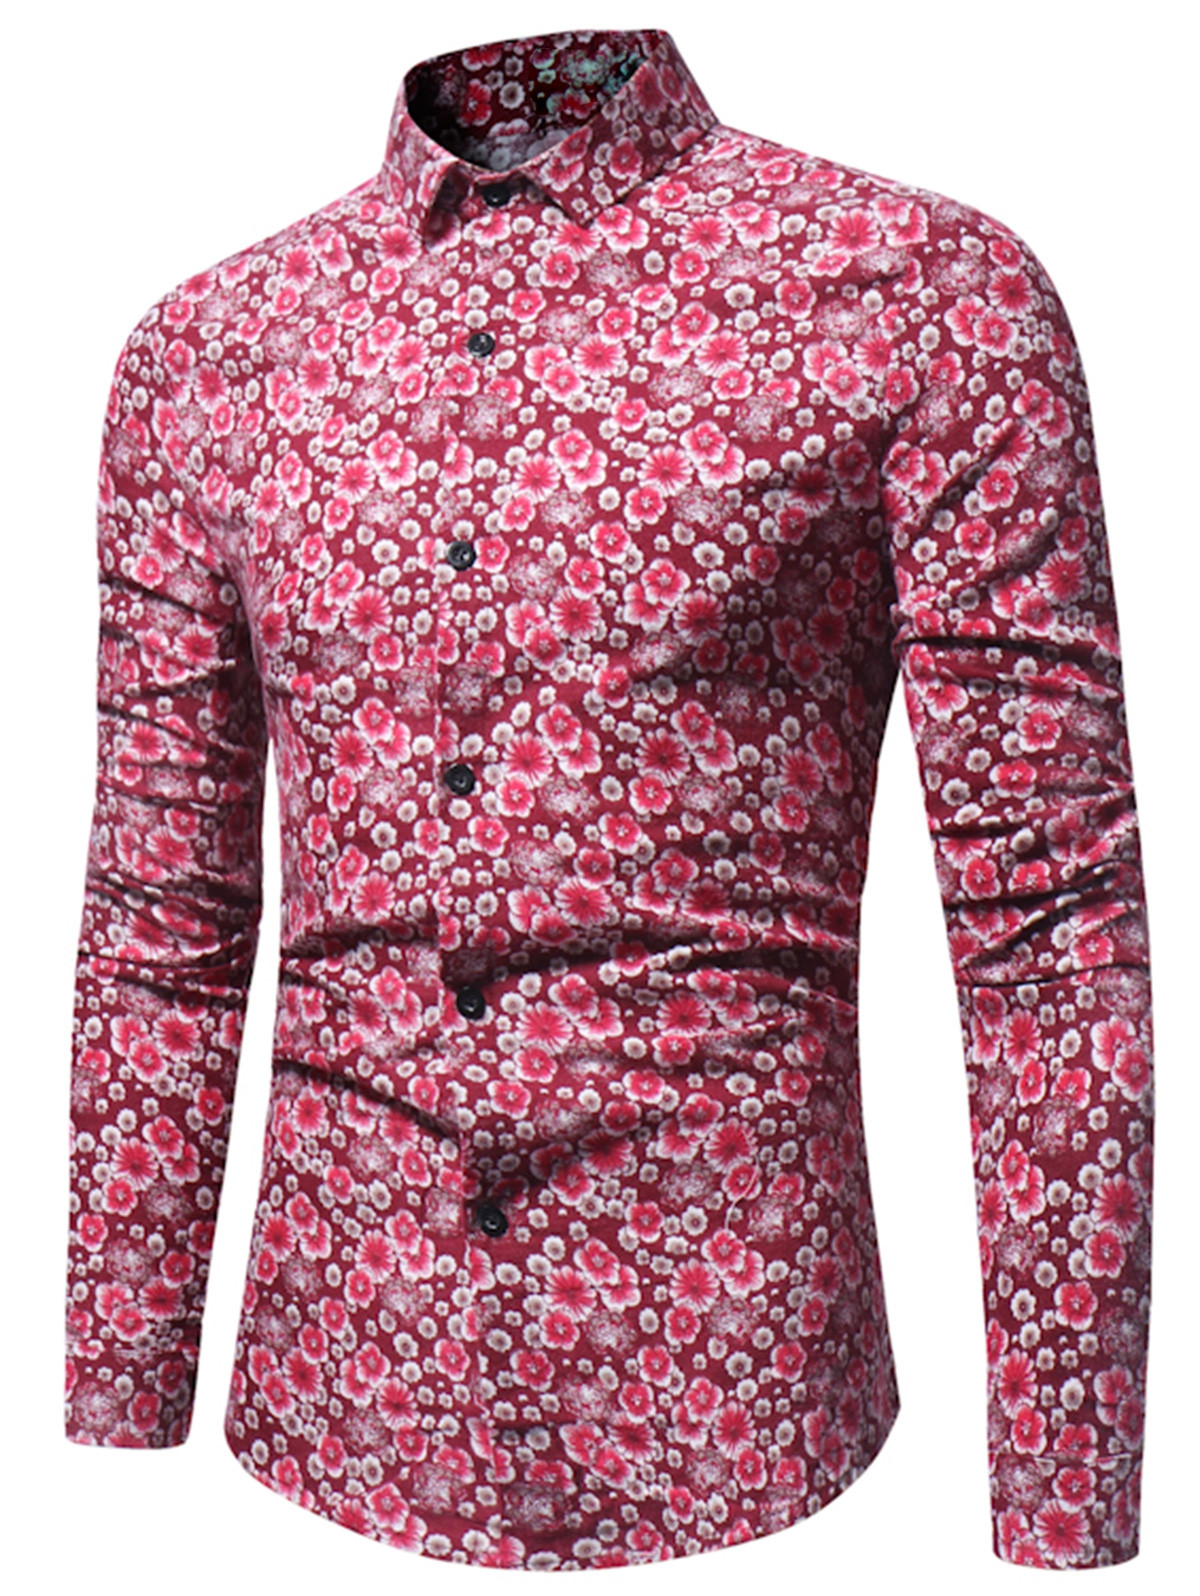 Casual Flower Printed Long Sleeve Shirt RED 2XL